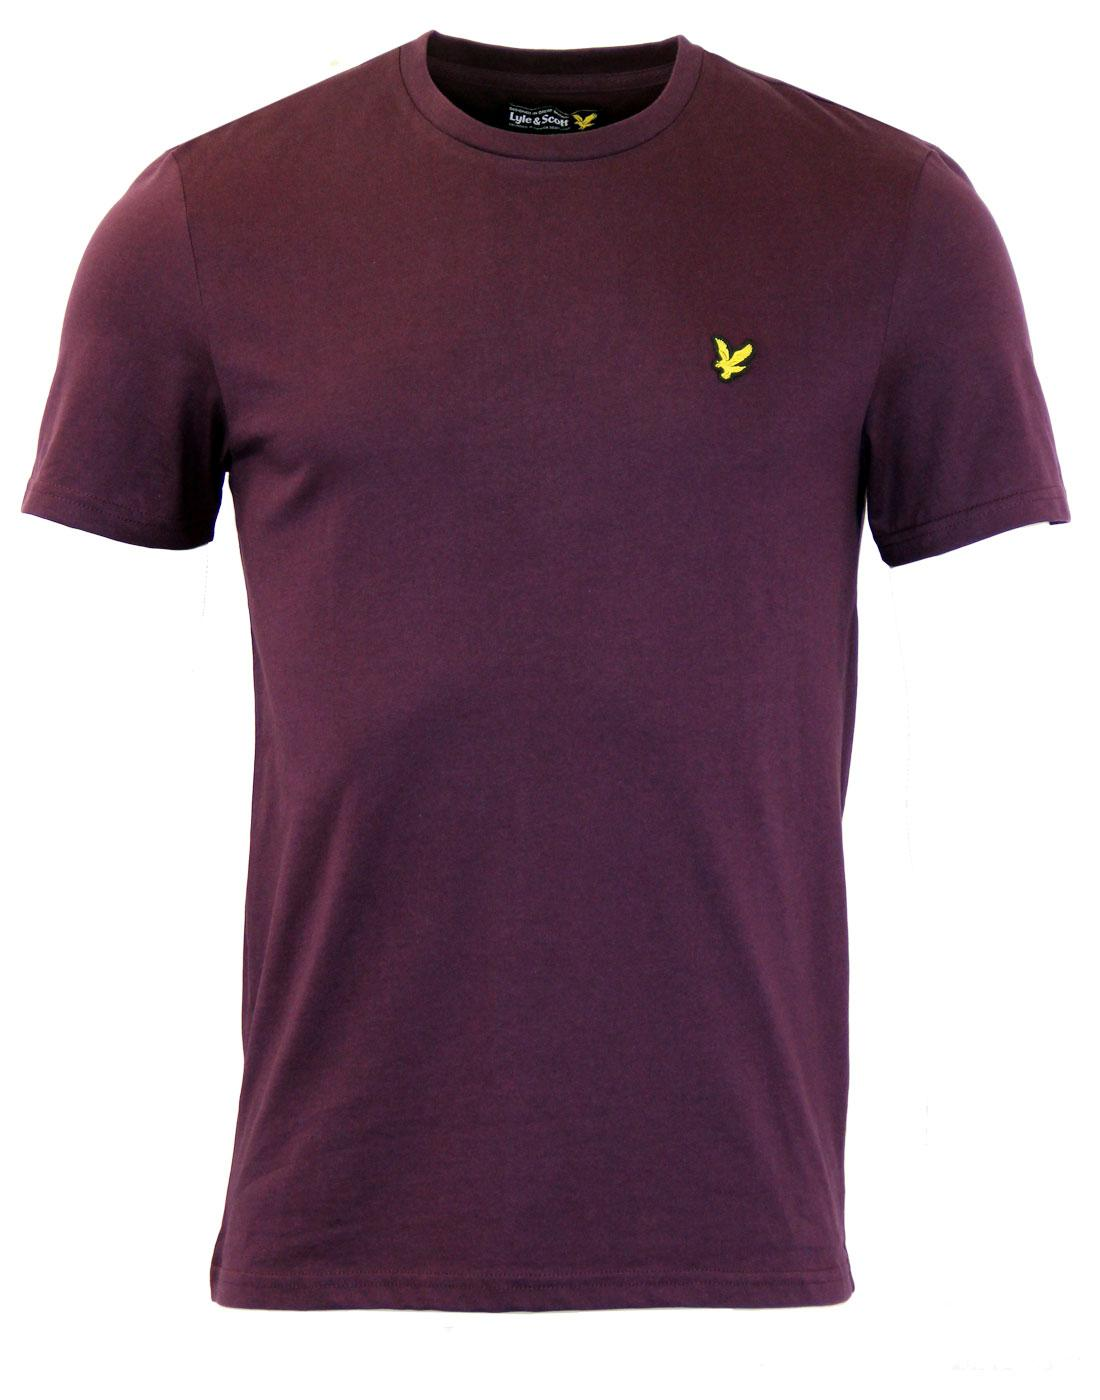 Cotton Crew Neck LYLE AND SCOTT Retro Mod T-shirt